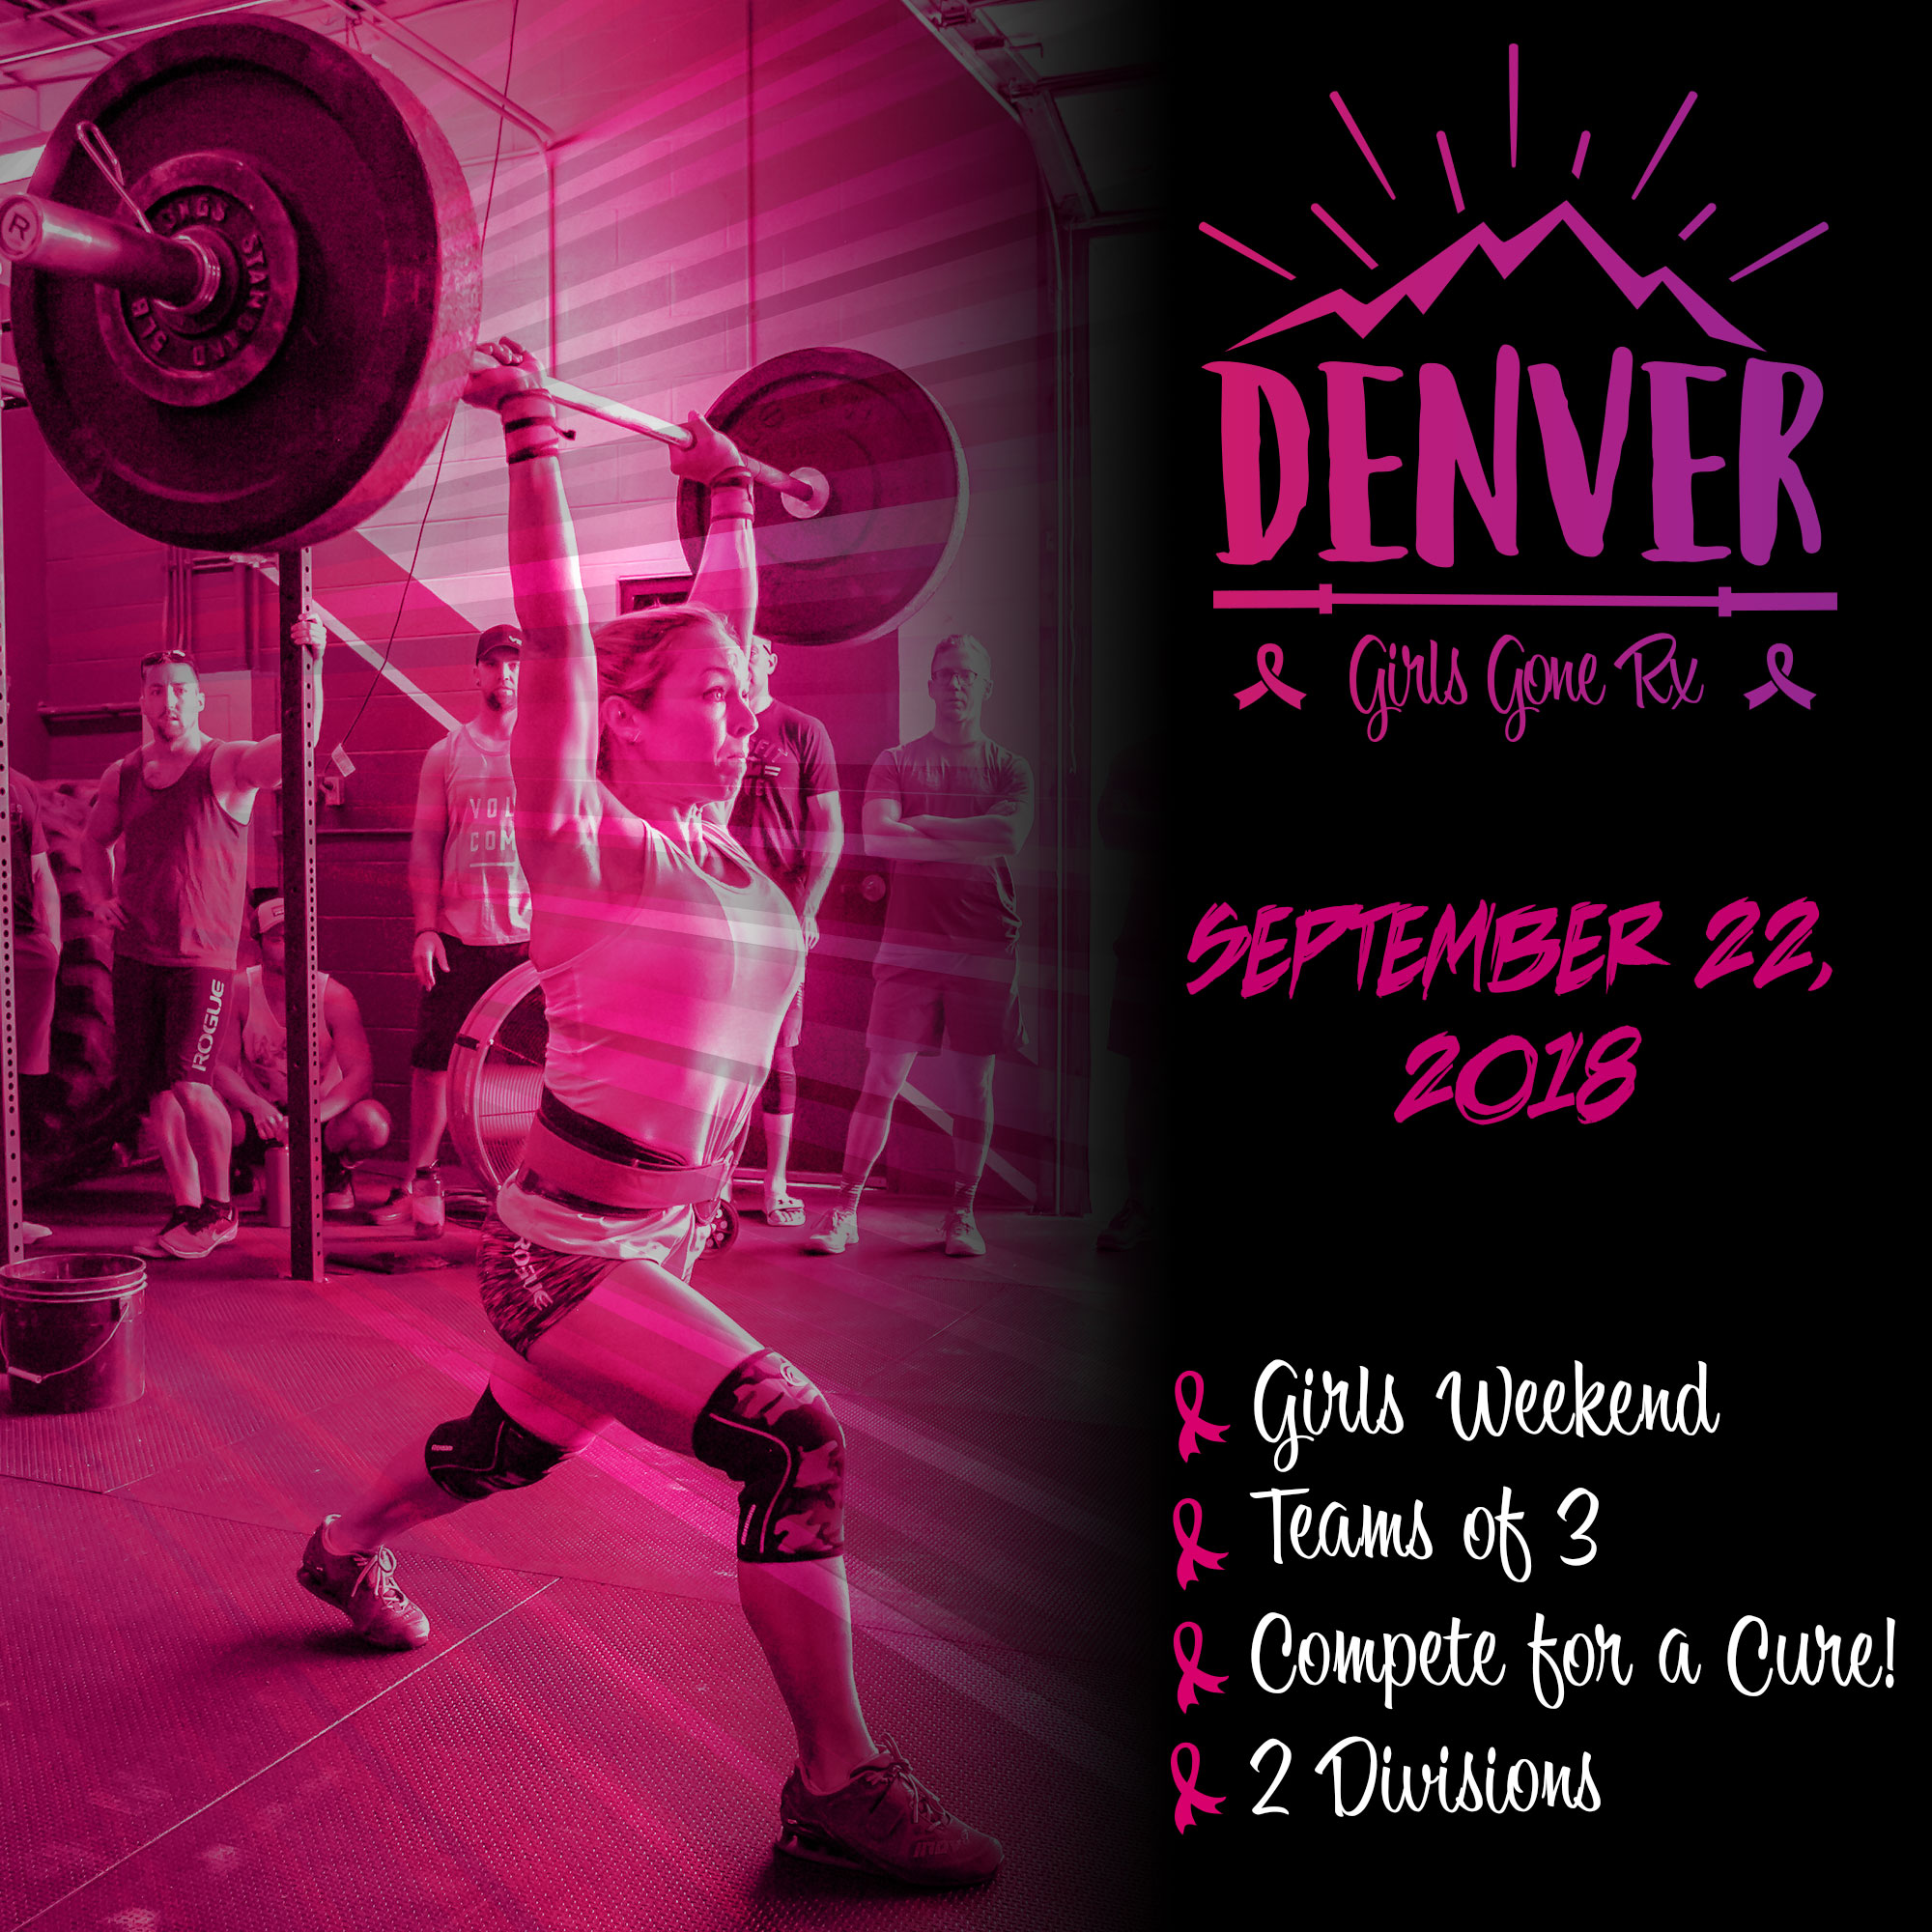 2018 Girls Gone RX Denver Photo